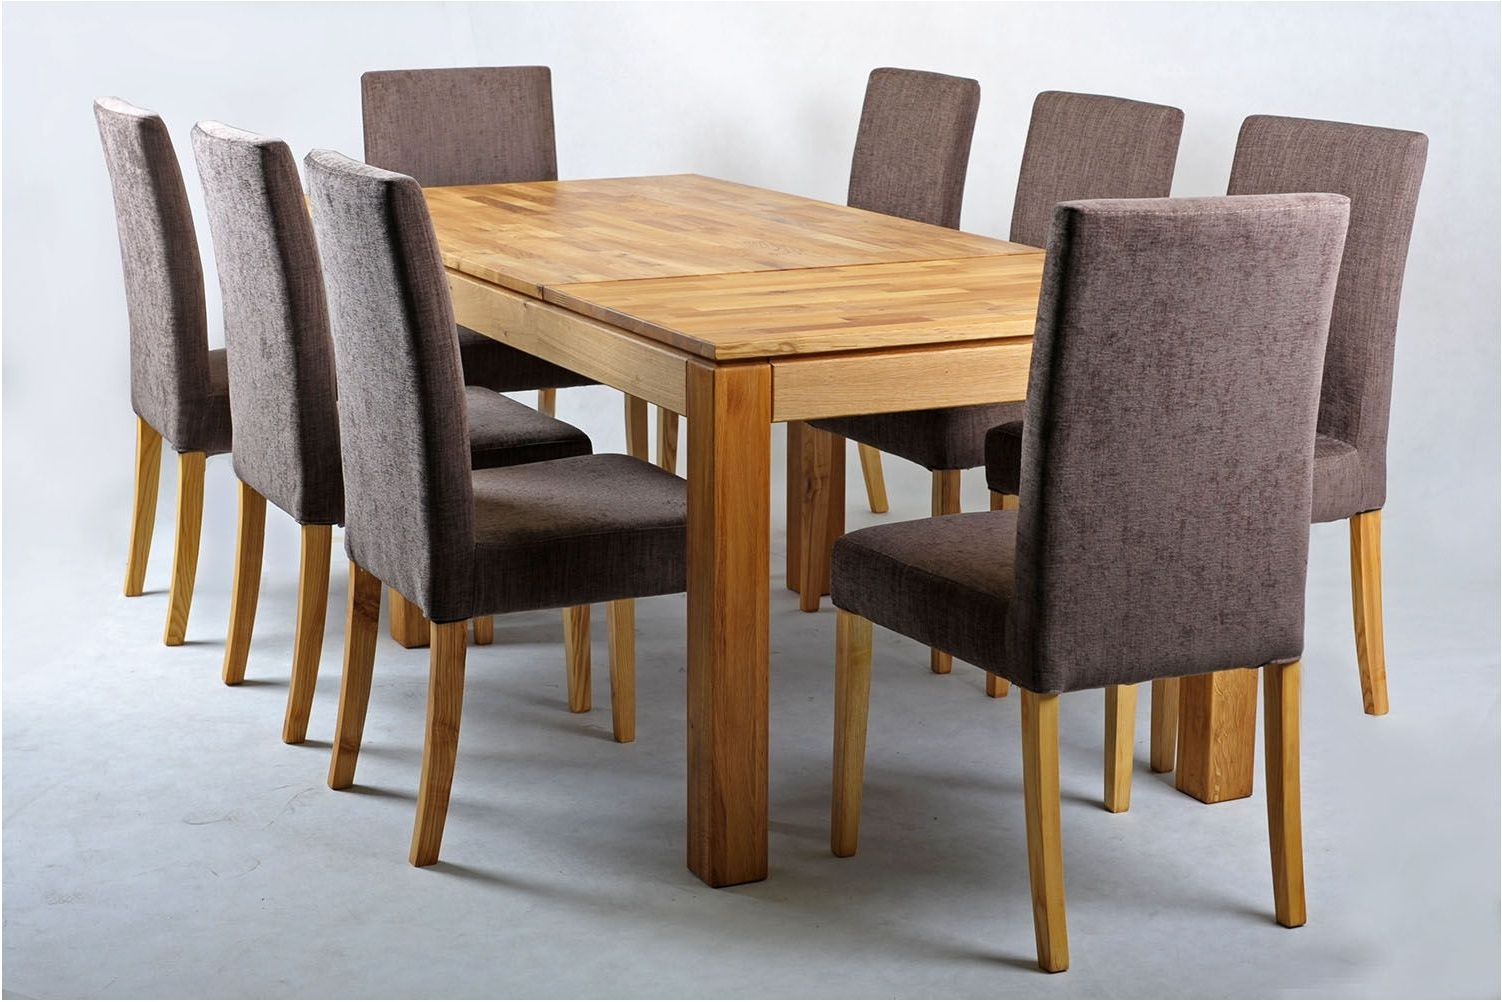 Spectacular Solid Oak Extending Dining Table And Chairs Set Home Intended For Well Known Extending Dining Room Tables And Chairs (View 19 of 25)